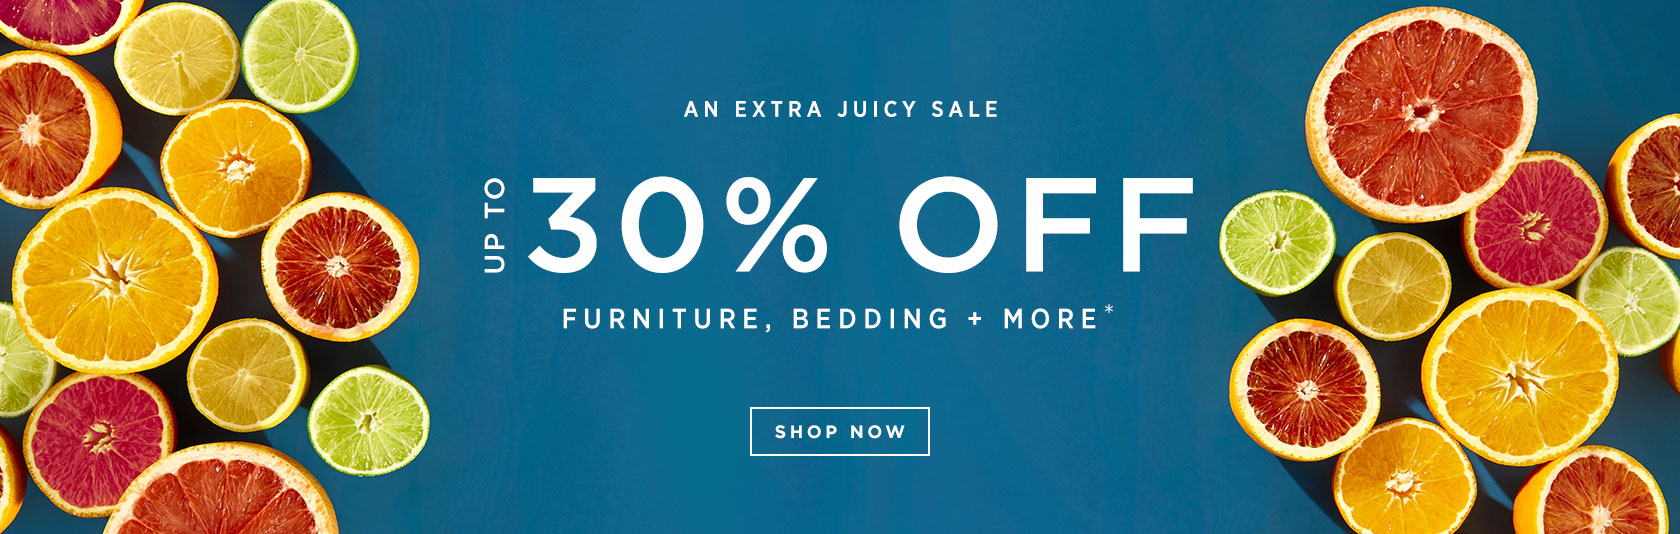 Up To 30% Off Furniture, Bedding + More